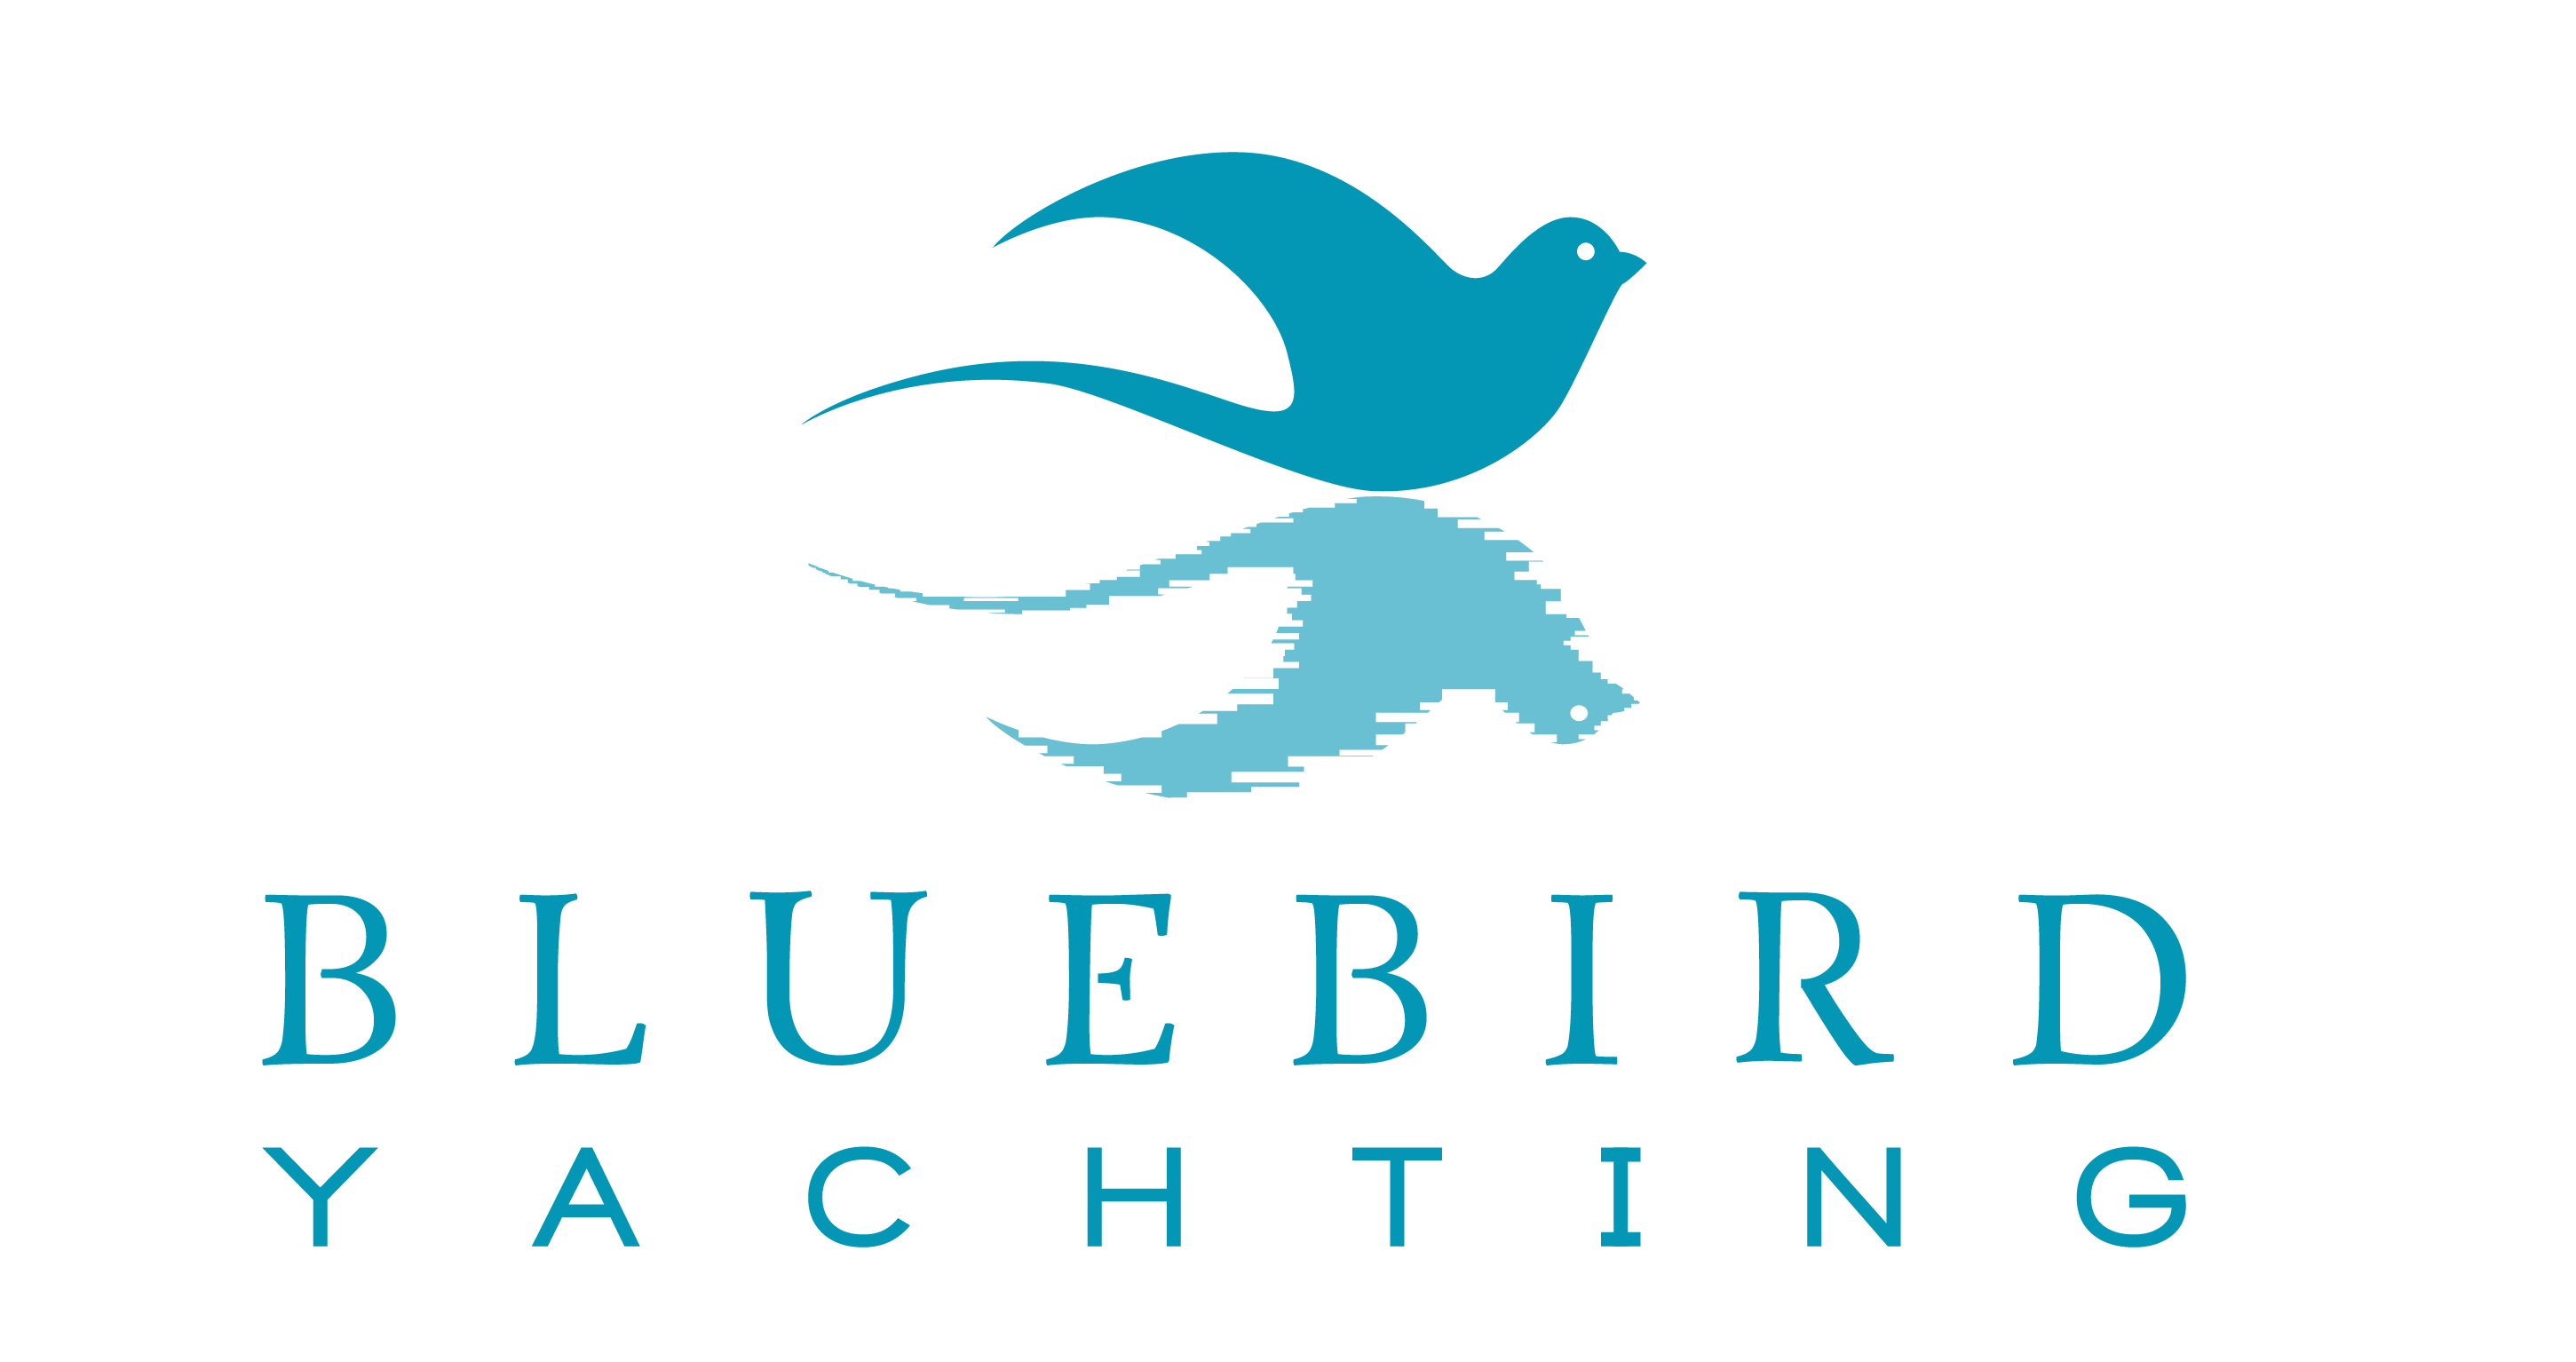 Bluebird Yachting | Balearic Islands | Bluebird Yachting